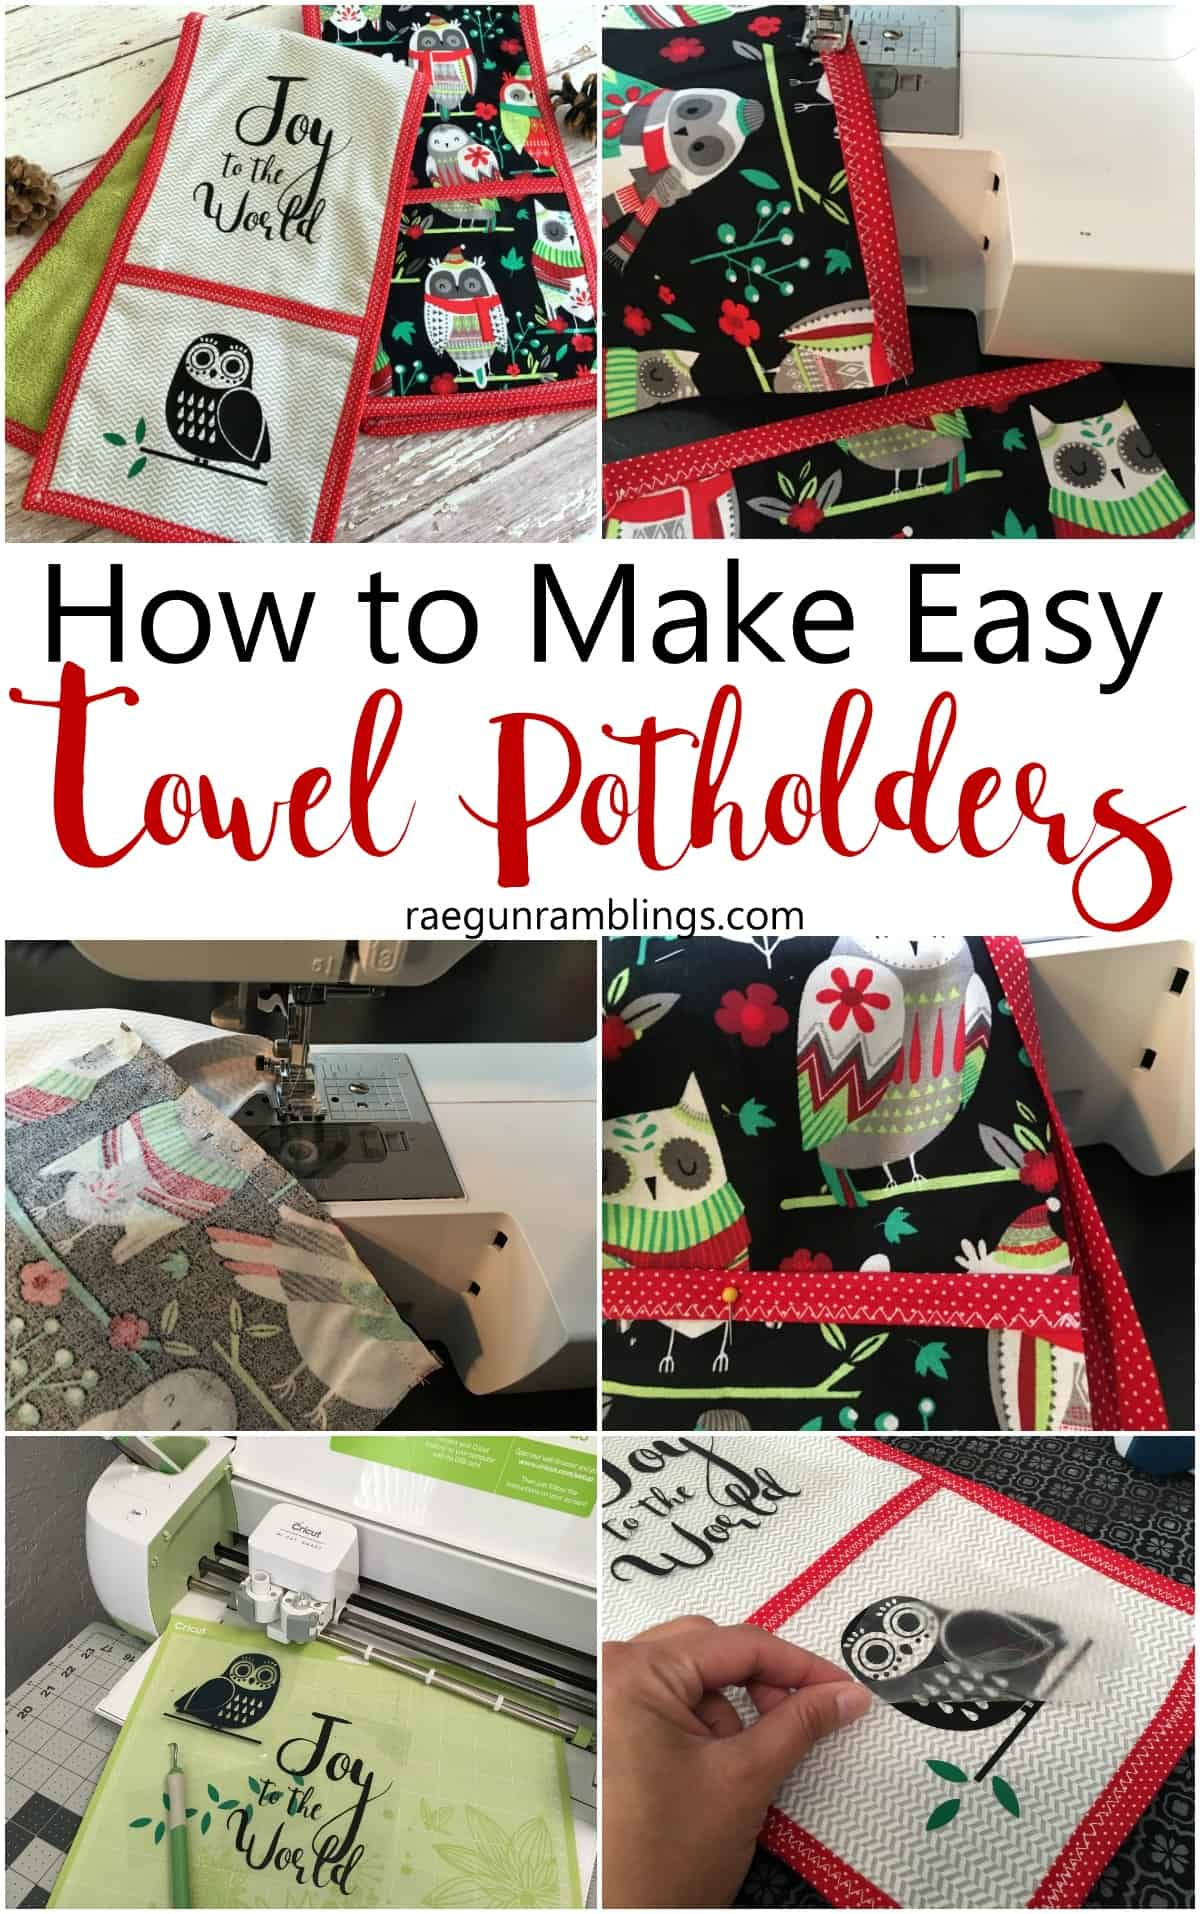 DIY double potholders that also function as towels. Cute sewing tutorial